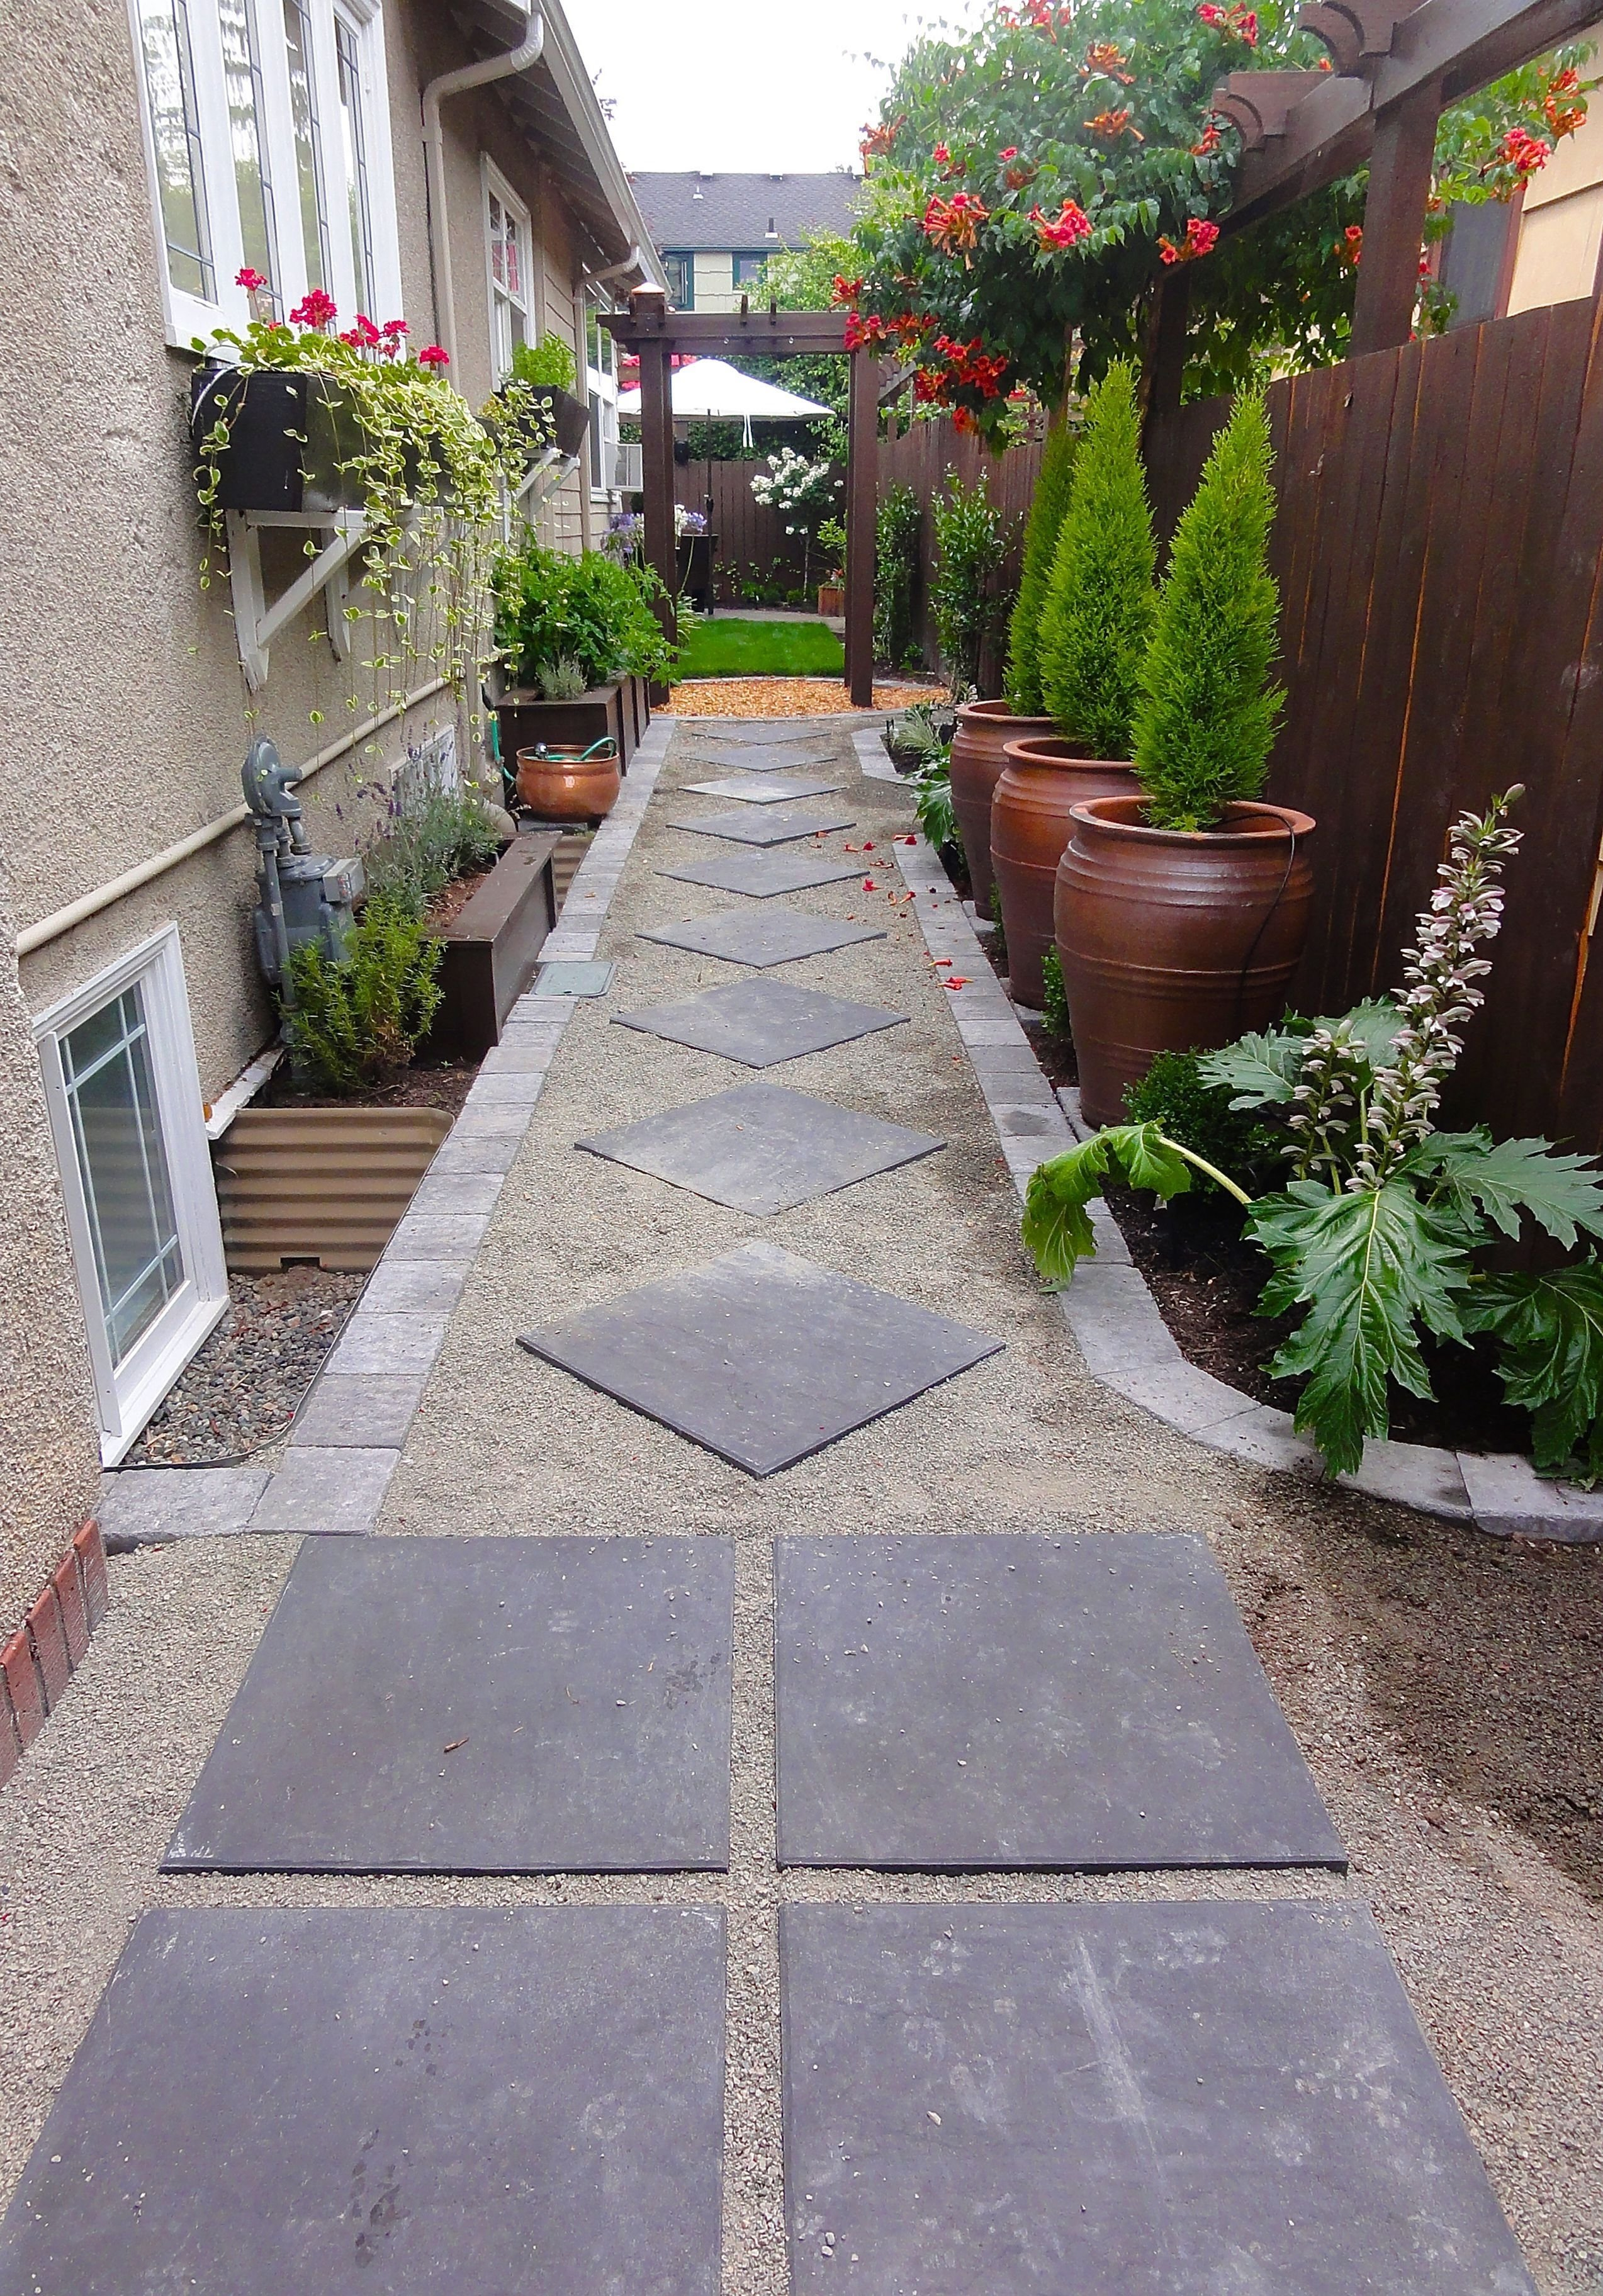 10 Awesome Backyard Ideas For Small Yards 40 incredible small garden for small backyard ideas small gardens 2020